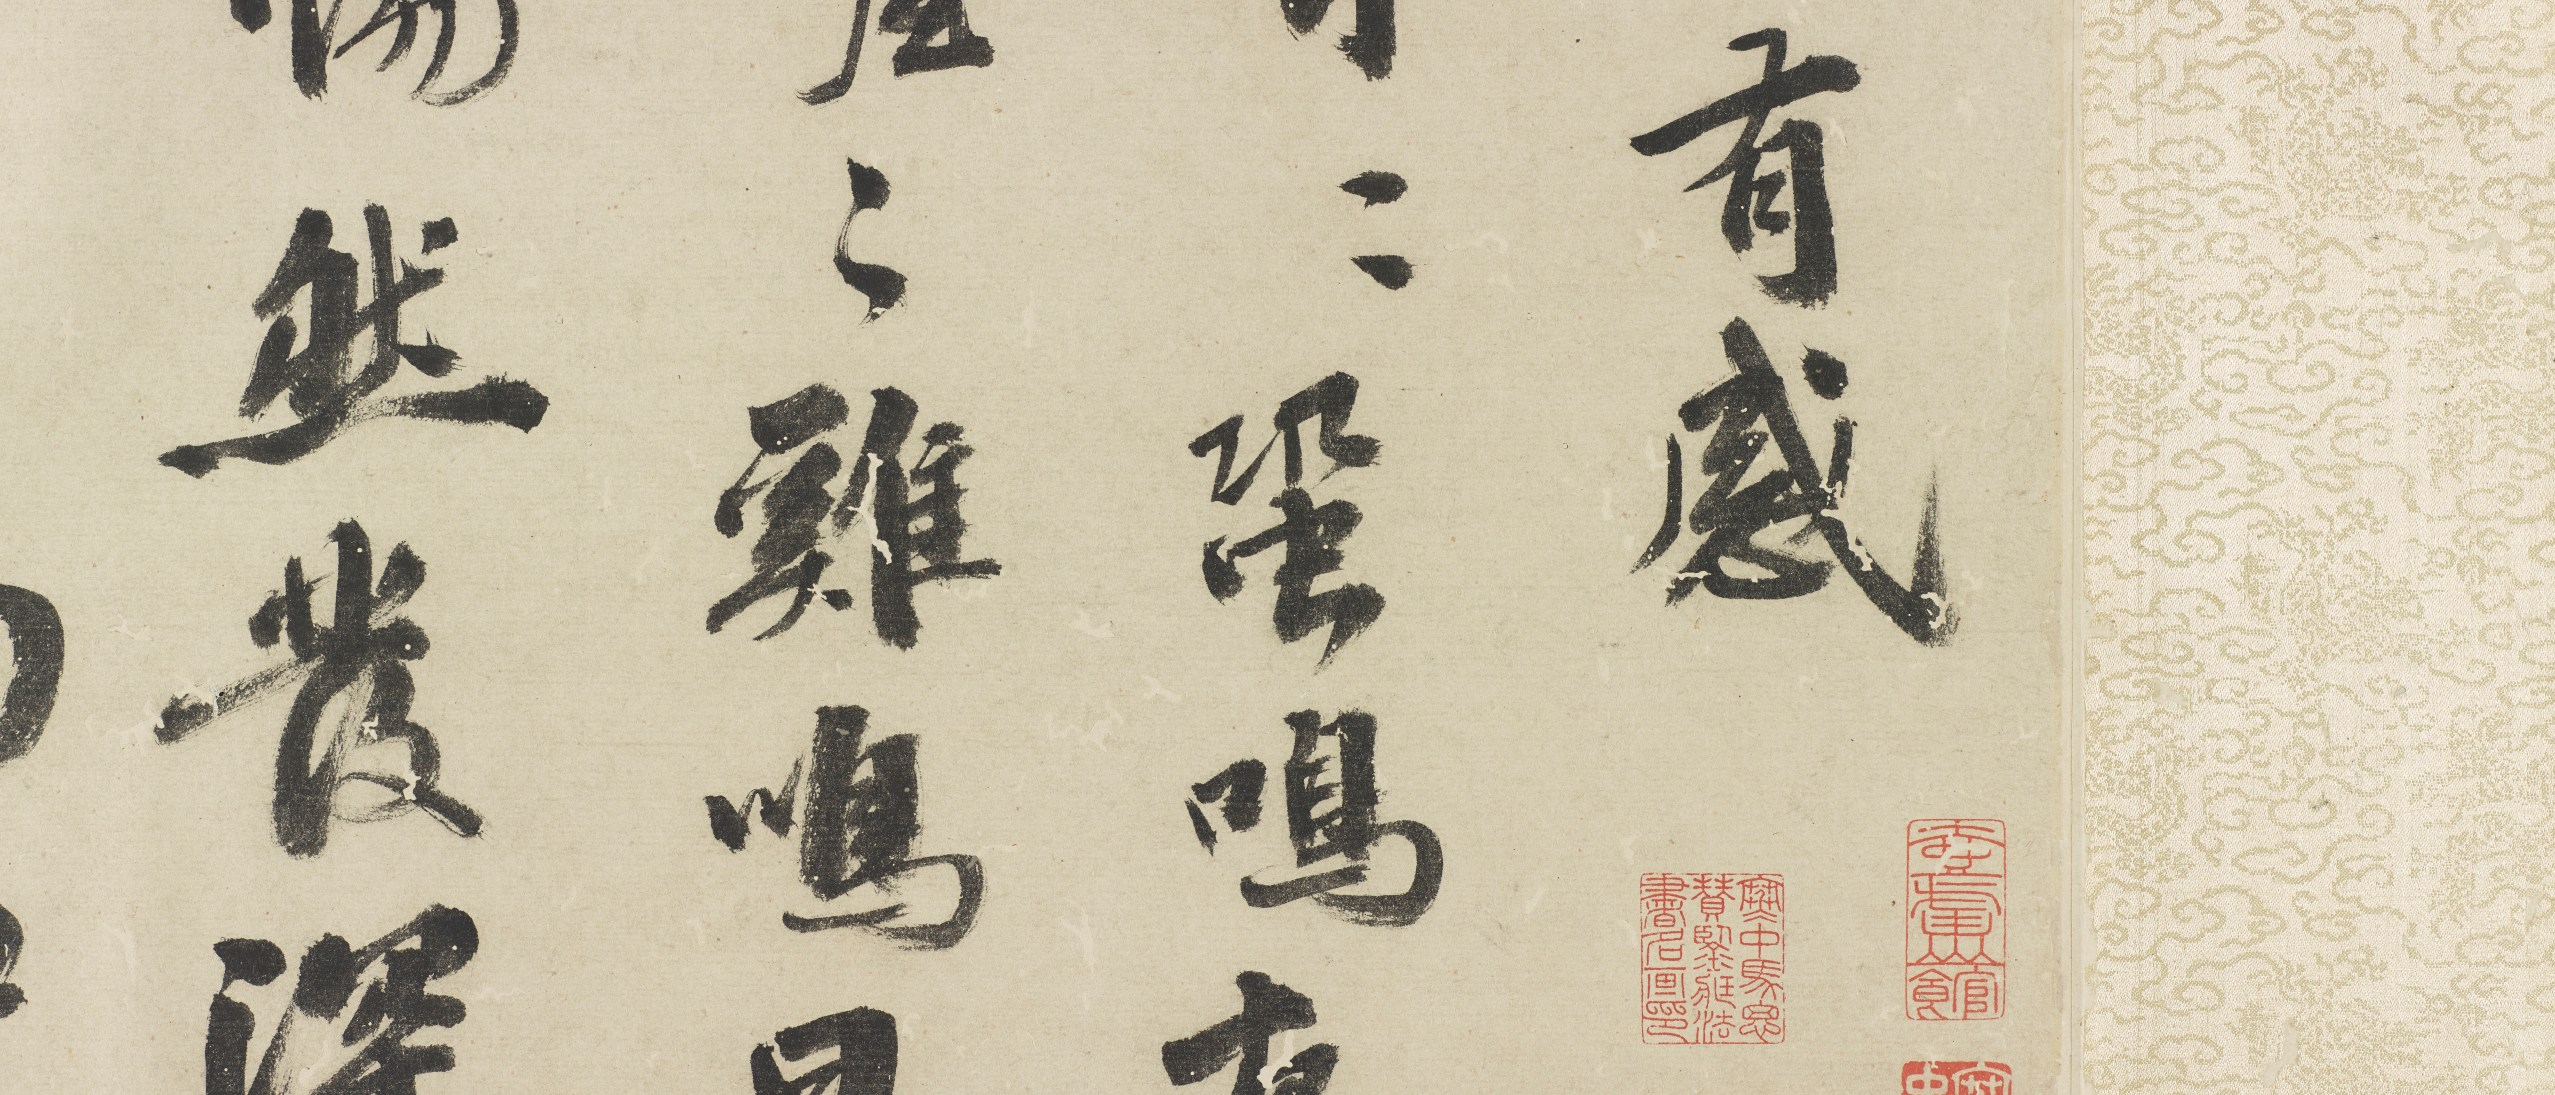 Four poems in running script Handscroll